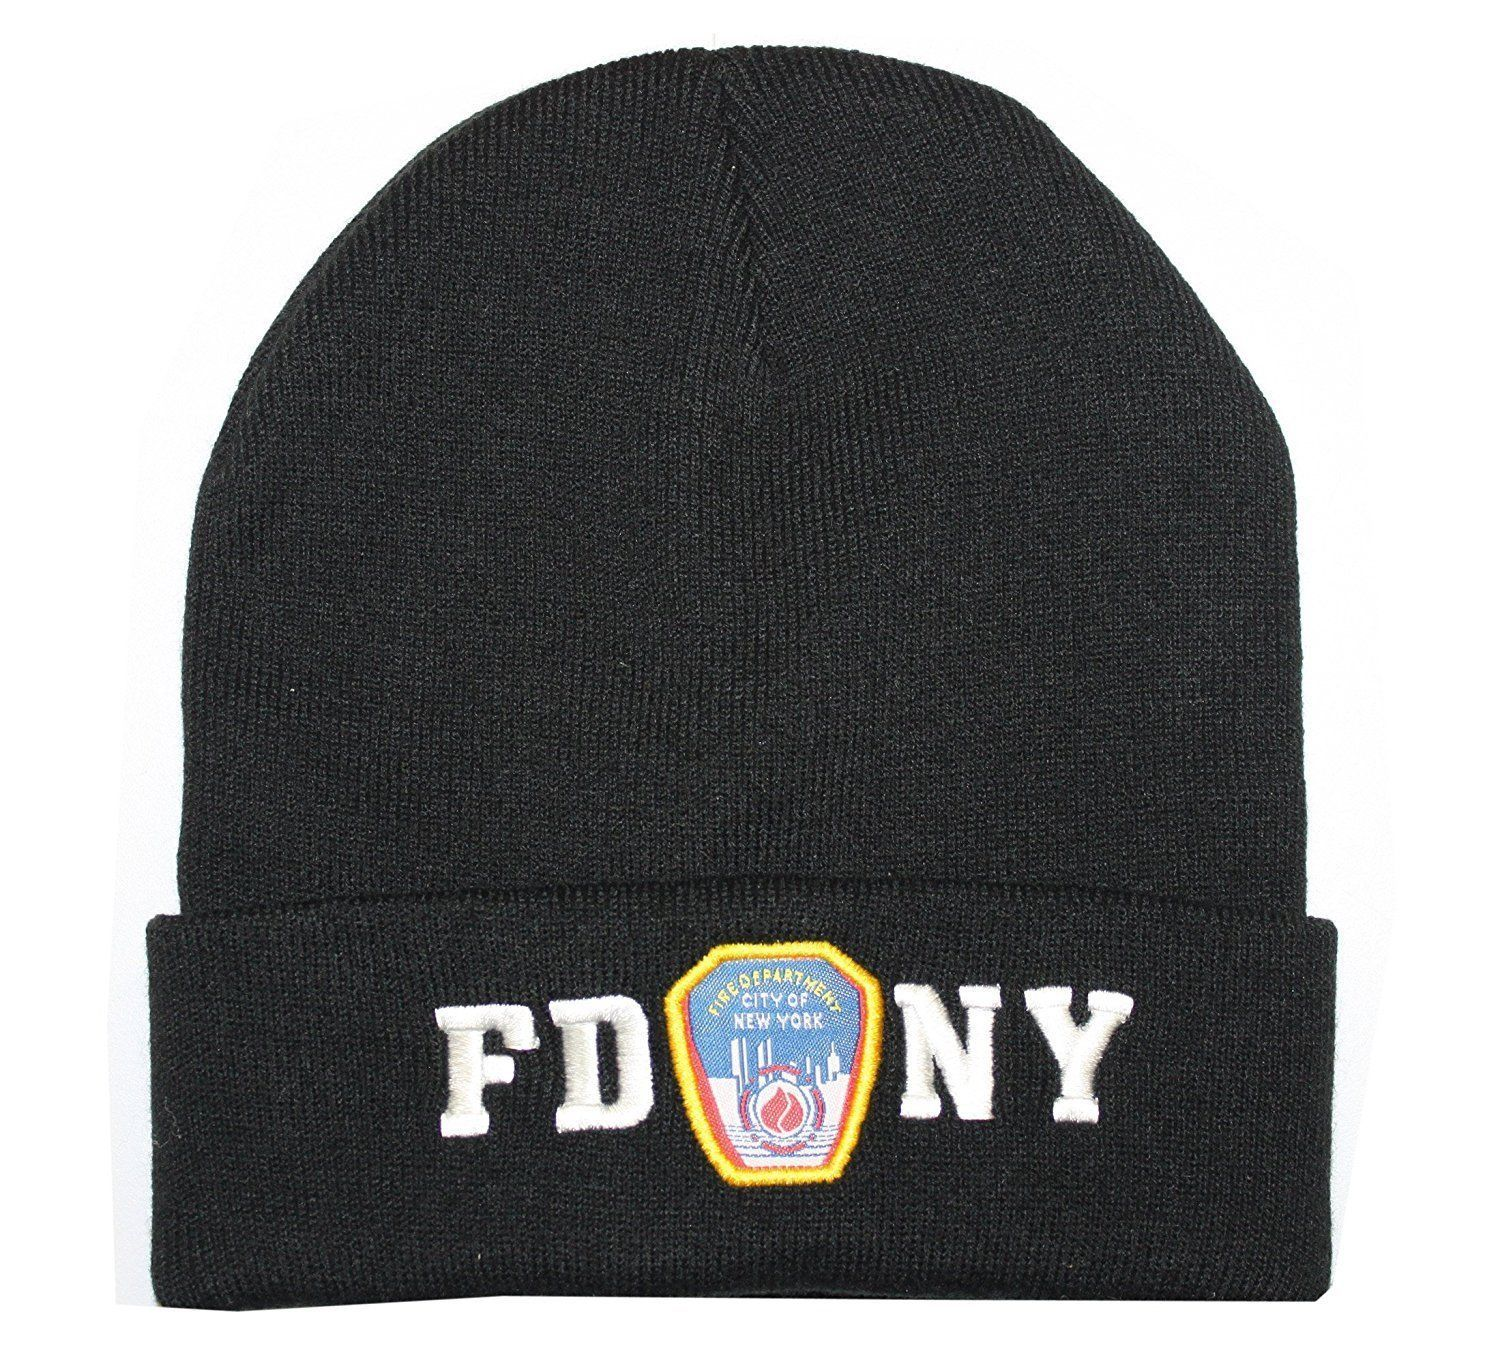 FDNY Winter Hat Police Badge Fire Department Of New York City Black & White O... - $13.98